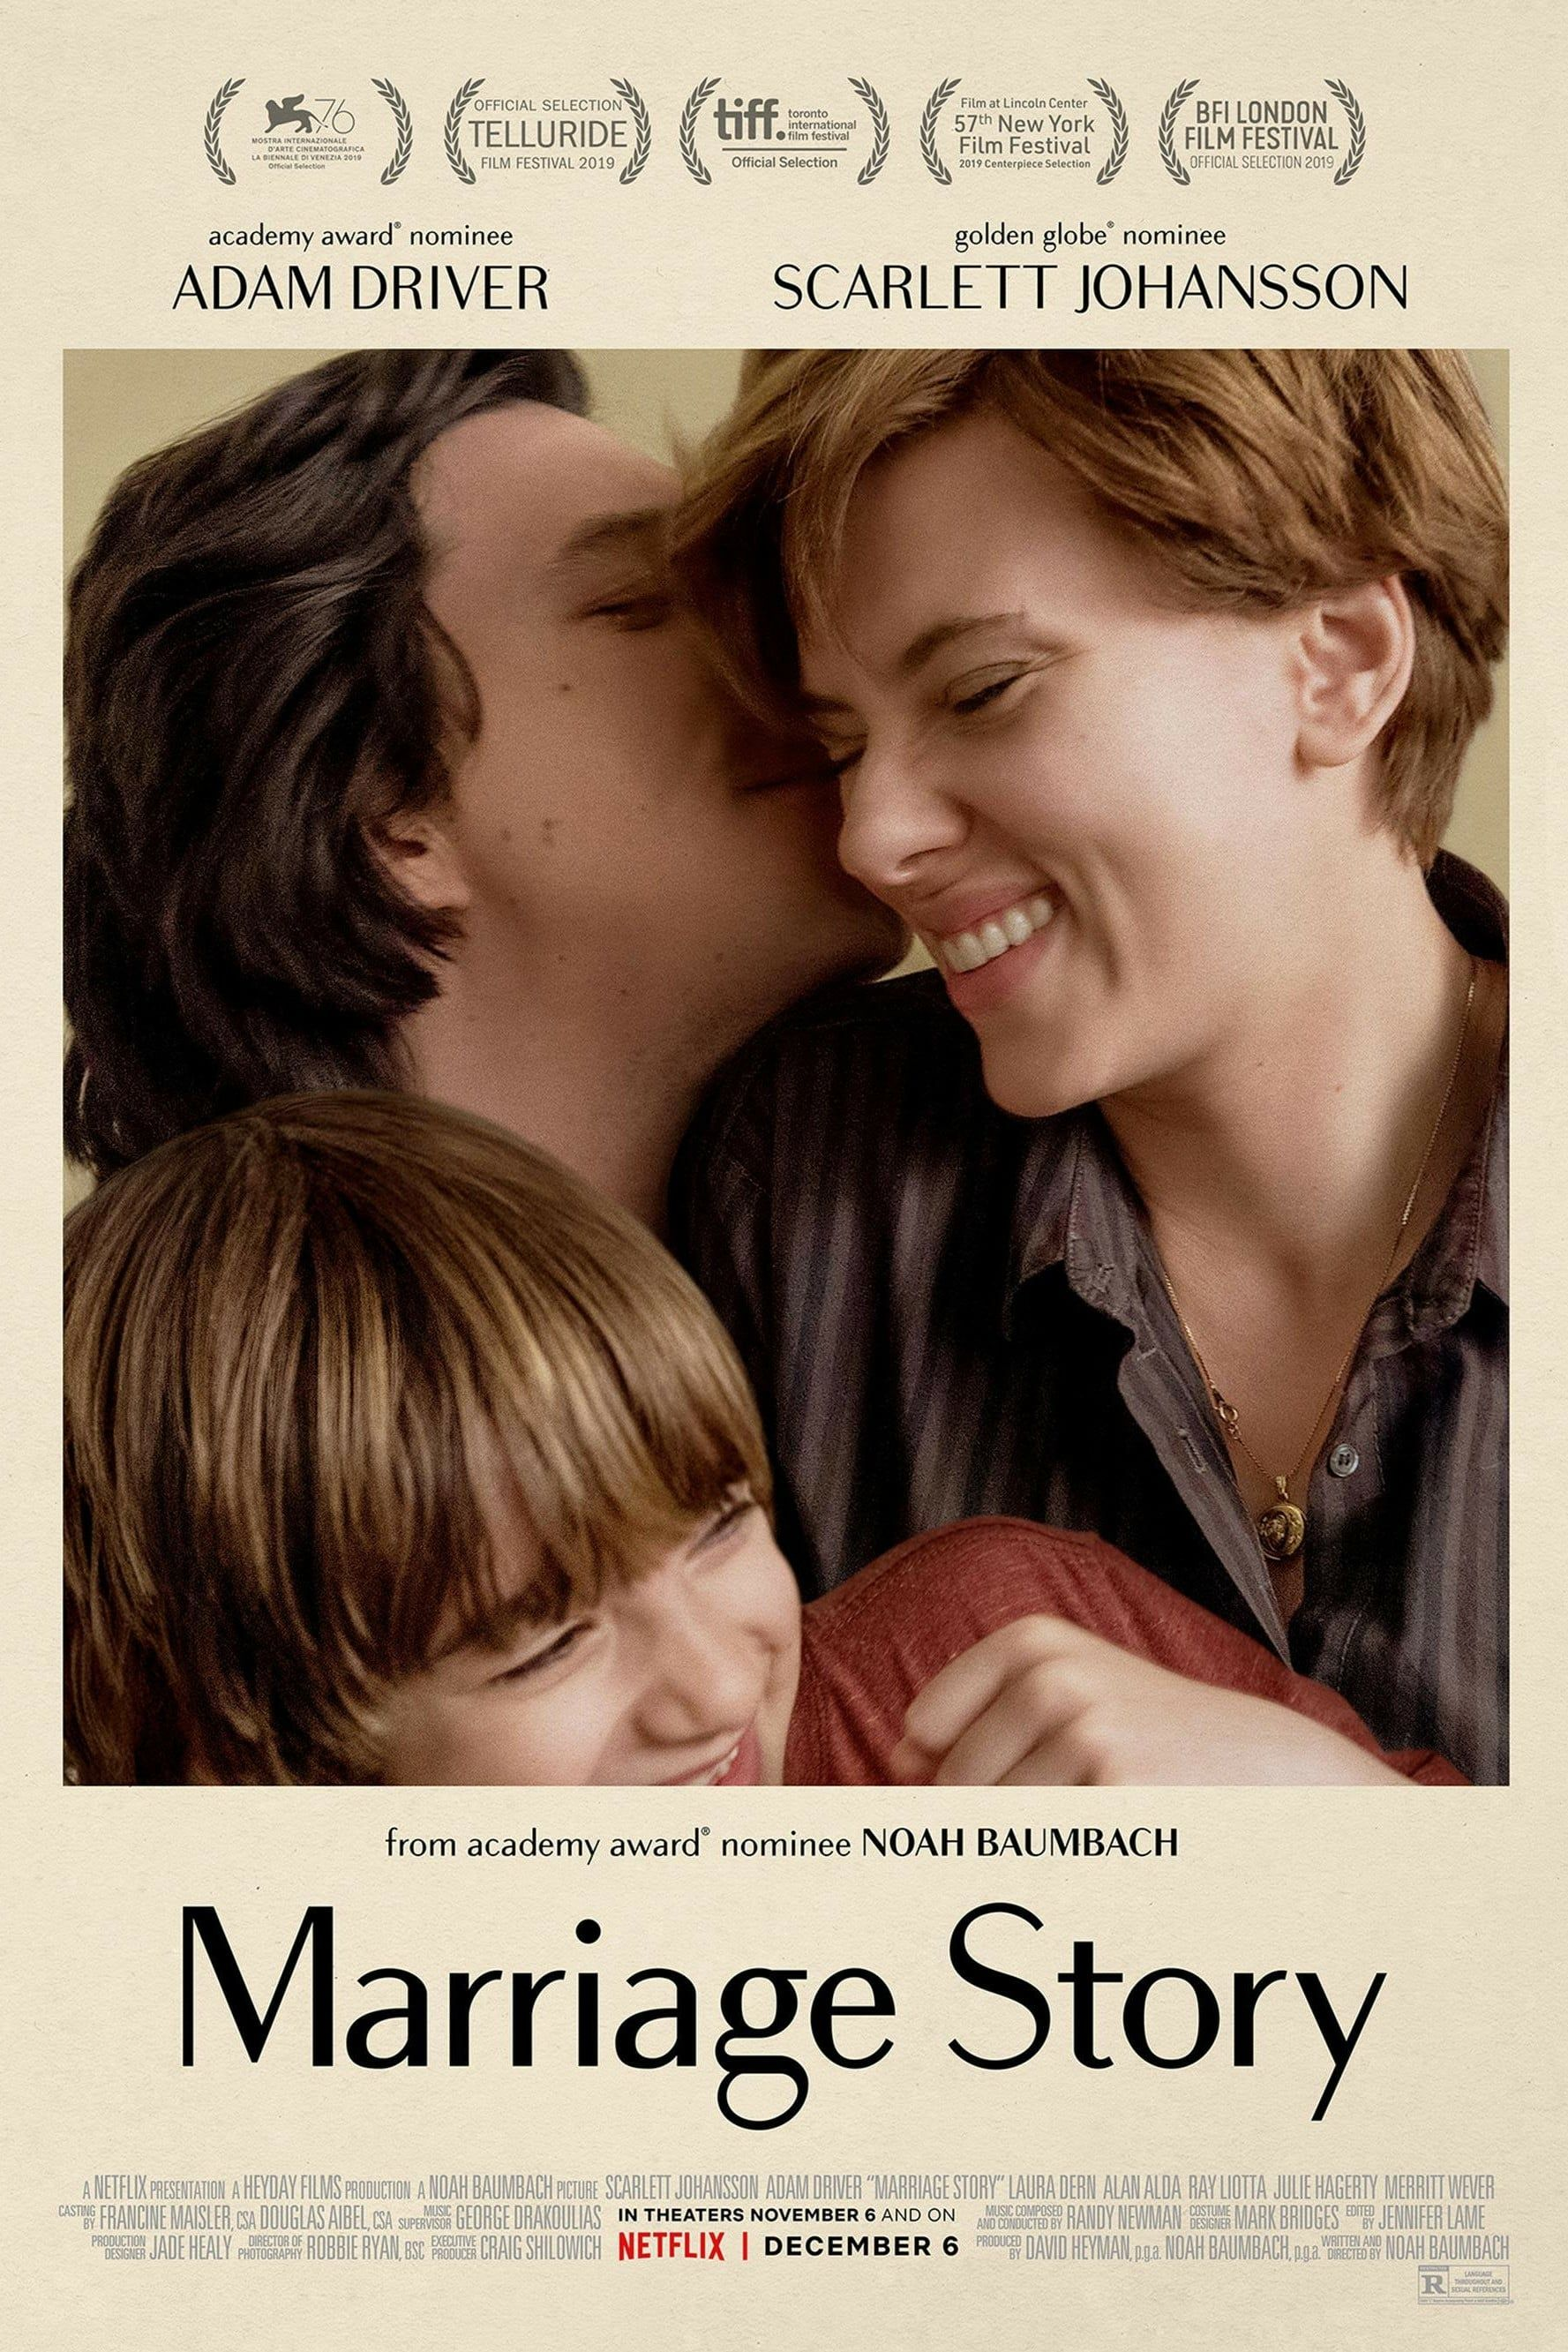 Ned Marriage Story Online Norsk Subtitles Tv Show Genres Film Posters Minimalist Retro Film Posters